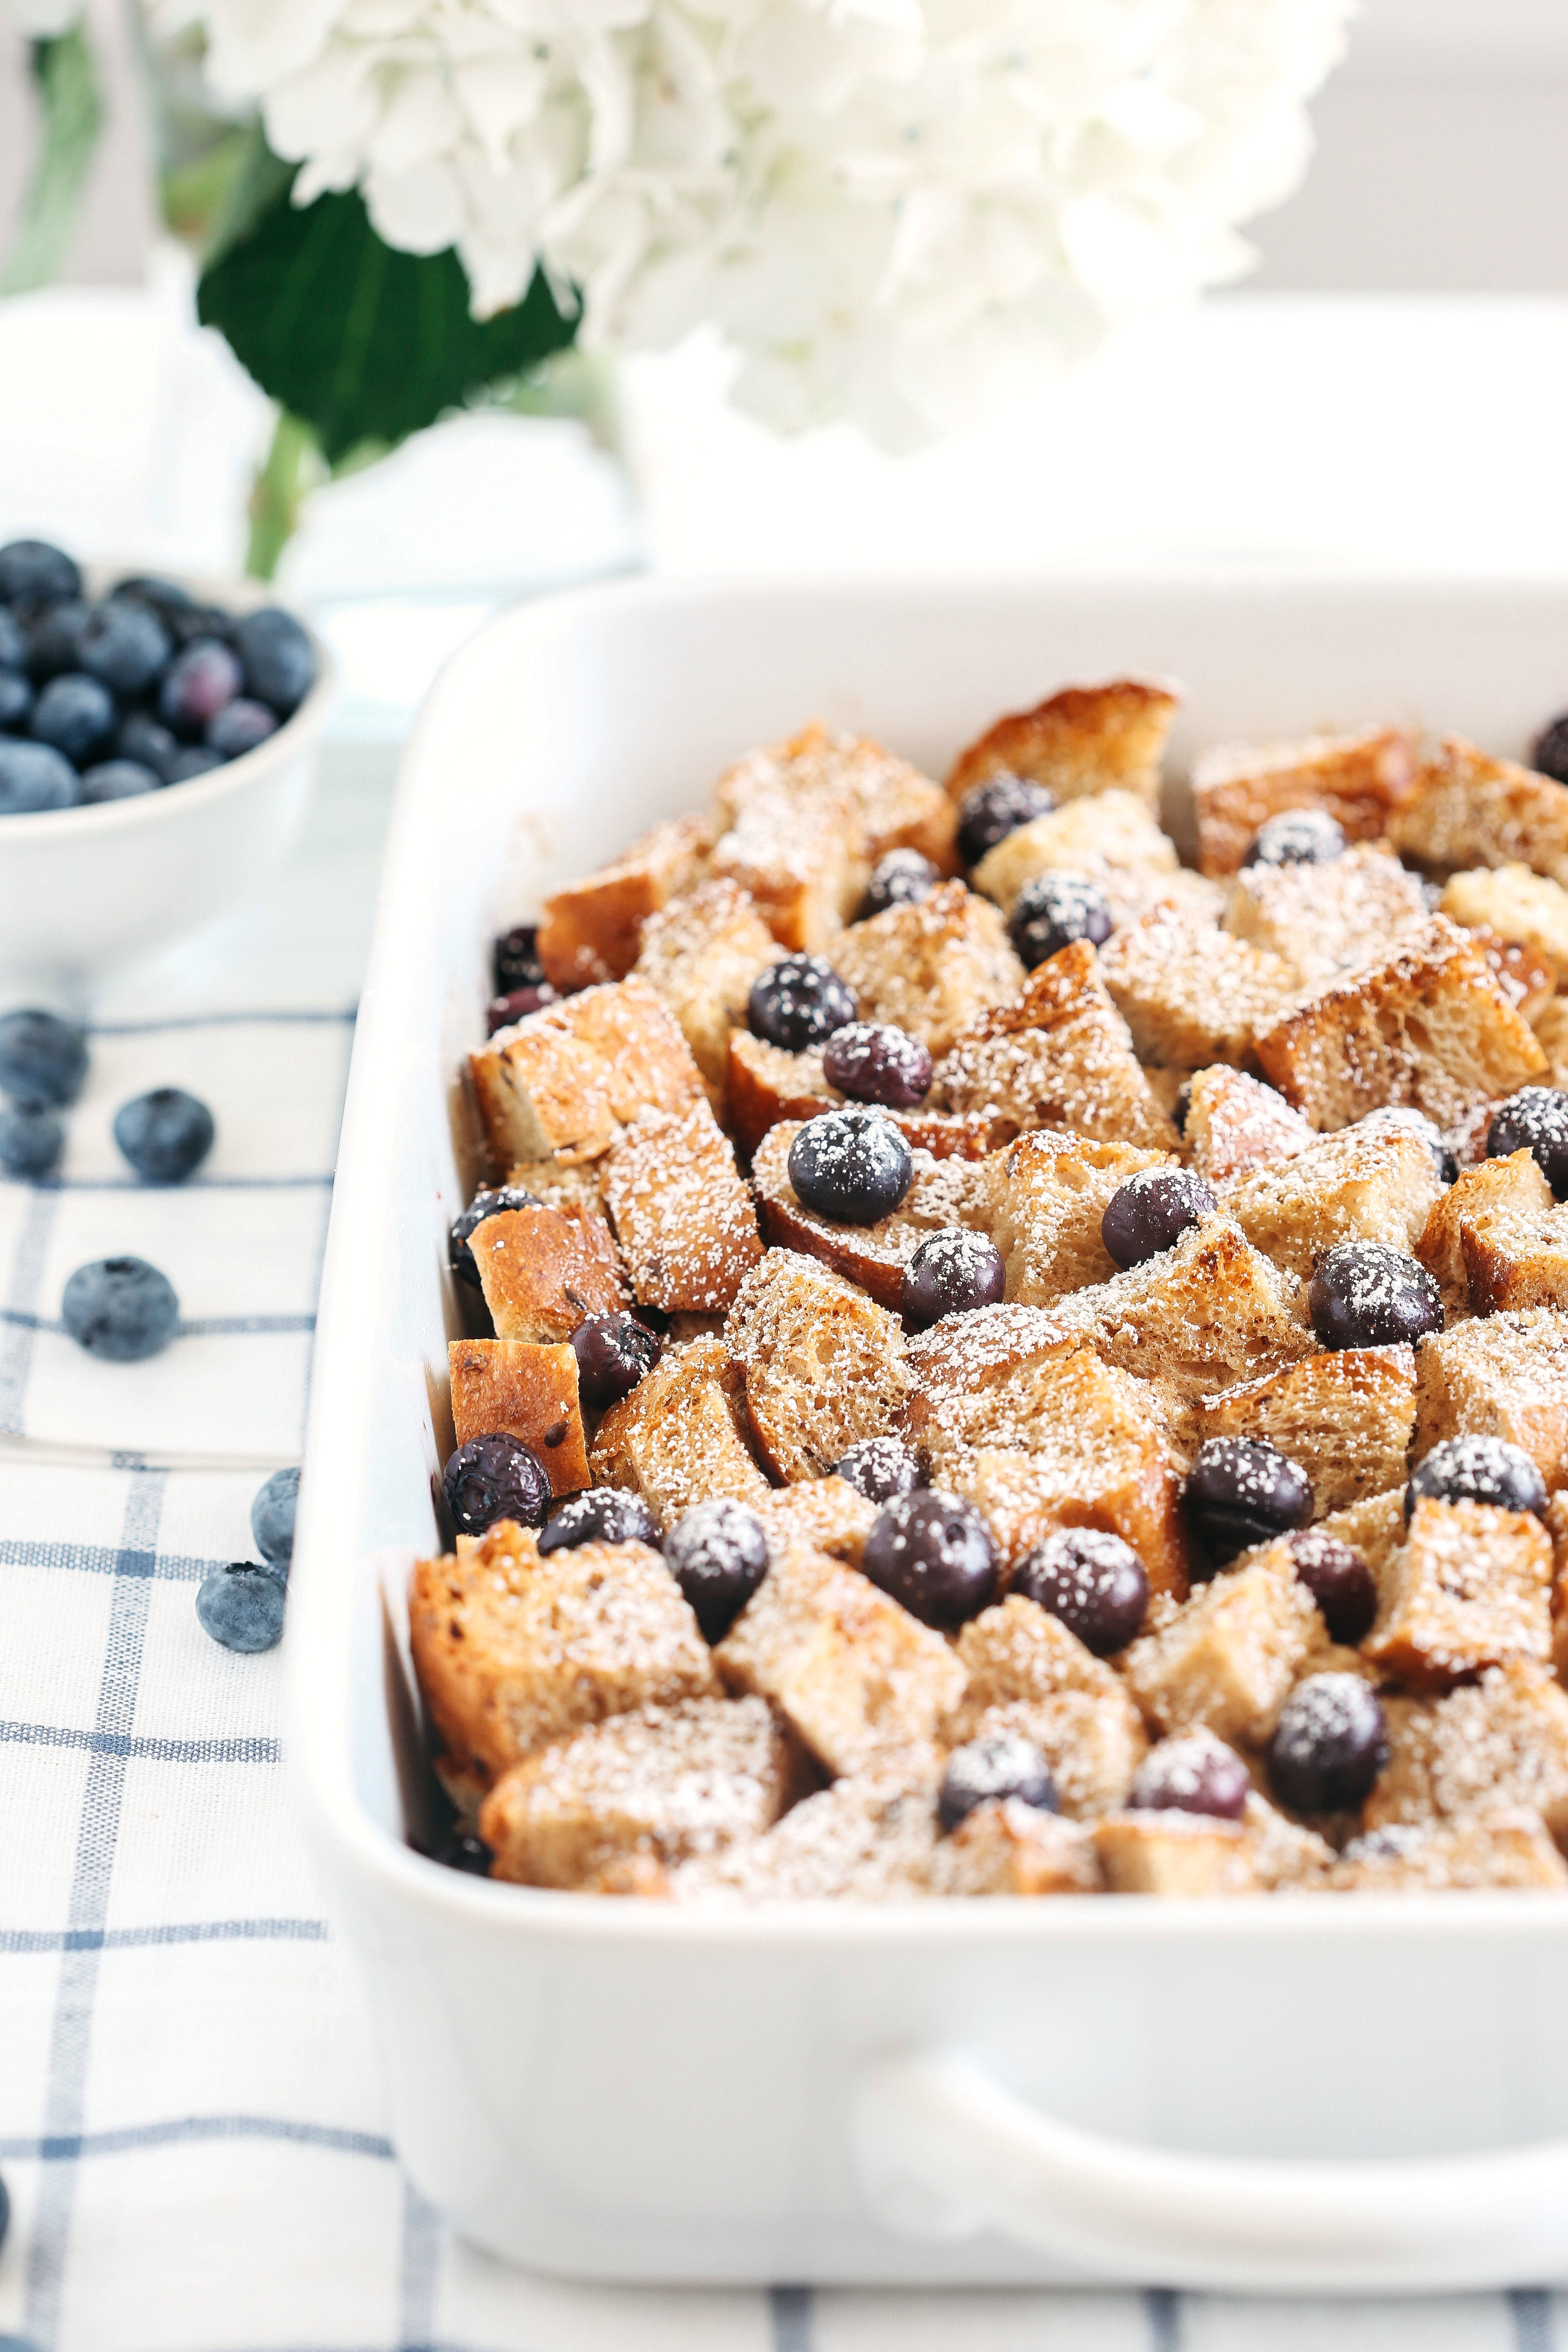 Warm and delicious Overnight Blueberry French Toast Casserole that is lighter in calories, high in protein and can easily be made the night before for the perfect morning breakfast!